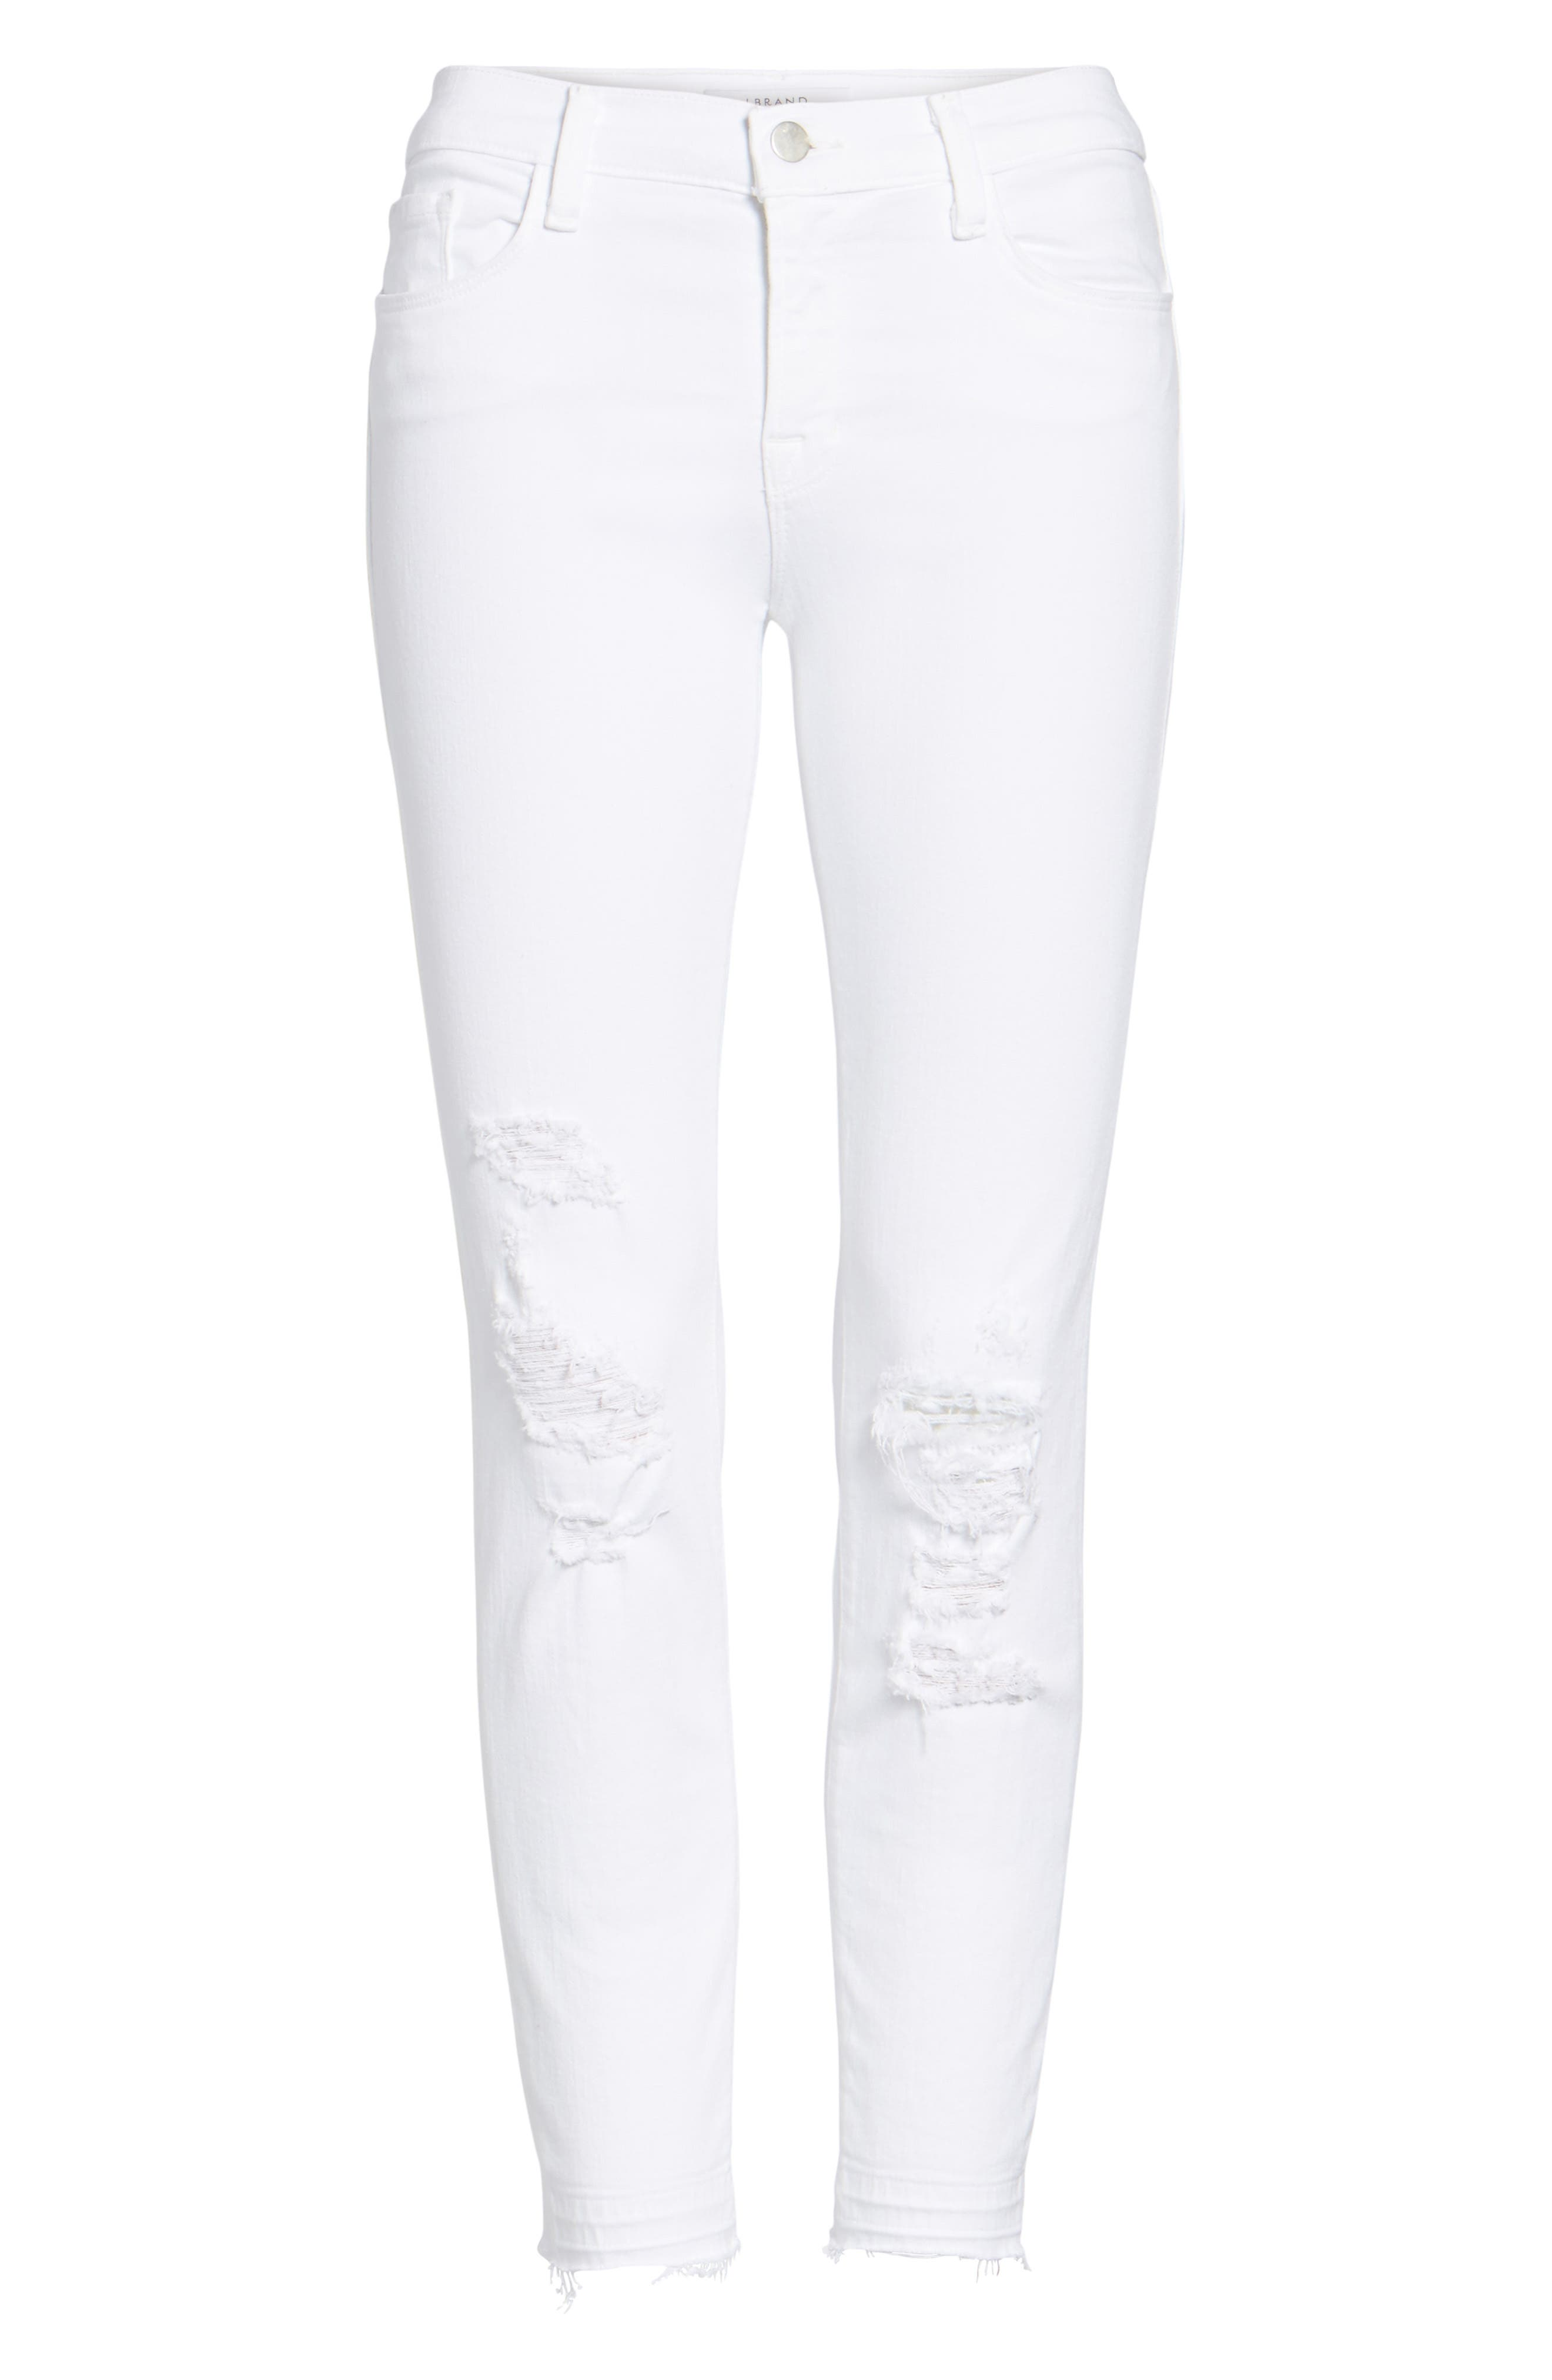 9326 Low Rise Crop Skinny Jeans,                             Alternate thumbnail 6, color,                             100